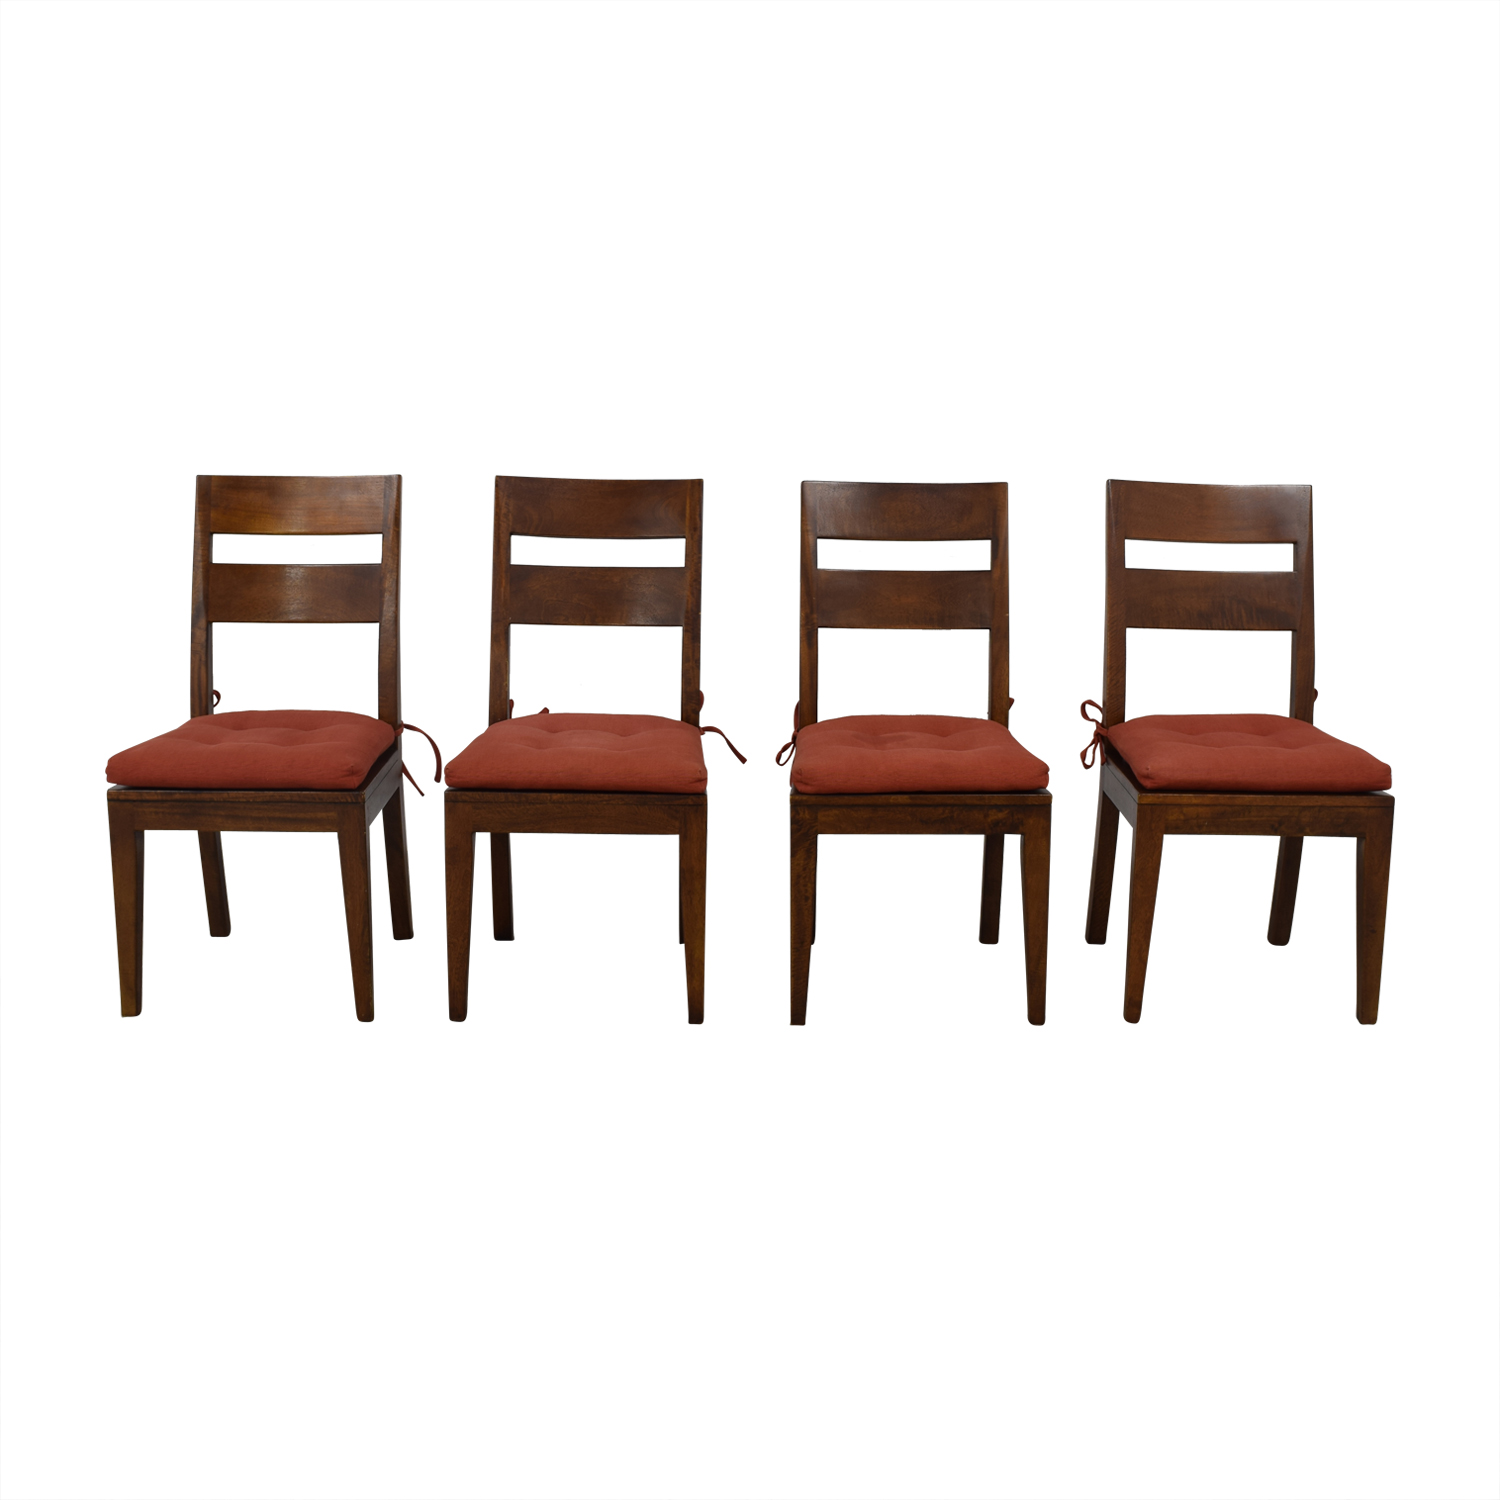 Crate & Barrel Crate & Barrel Basque Honey Dining Chairs Dining Chairs